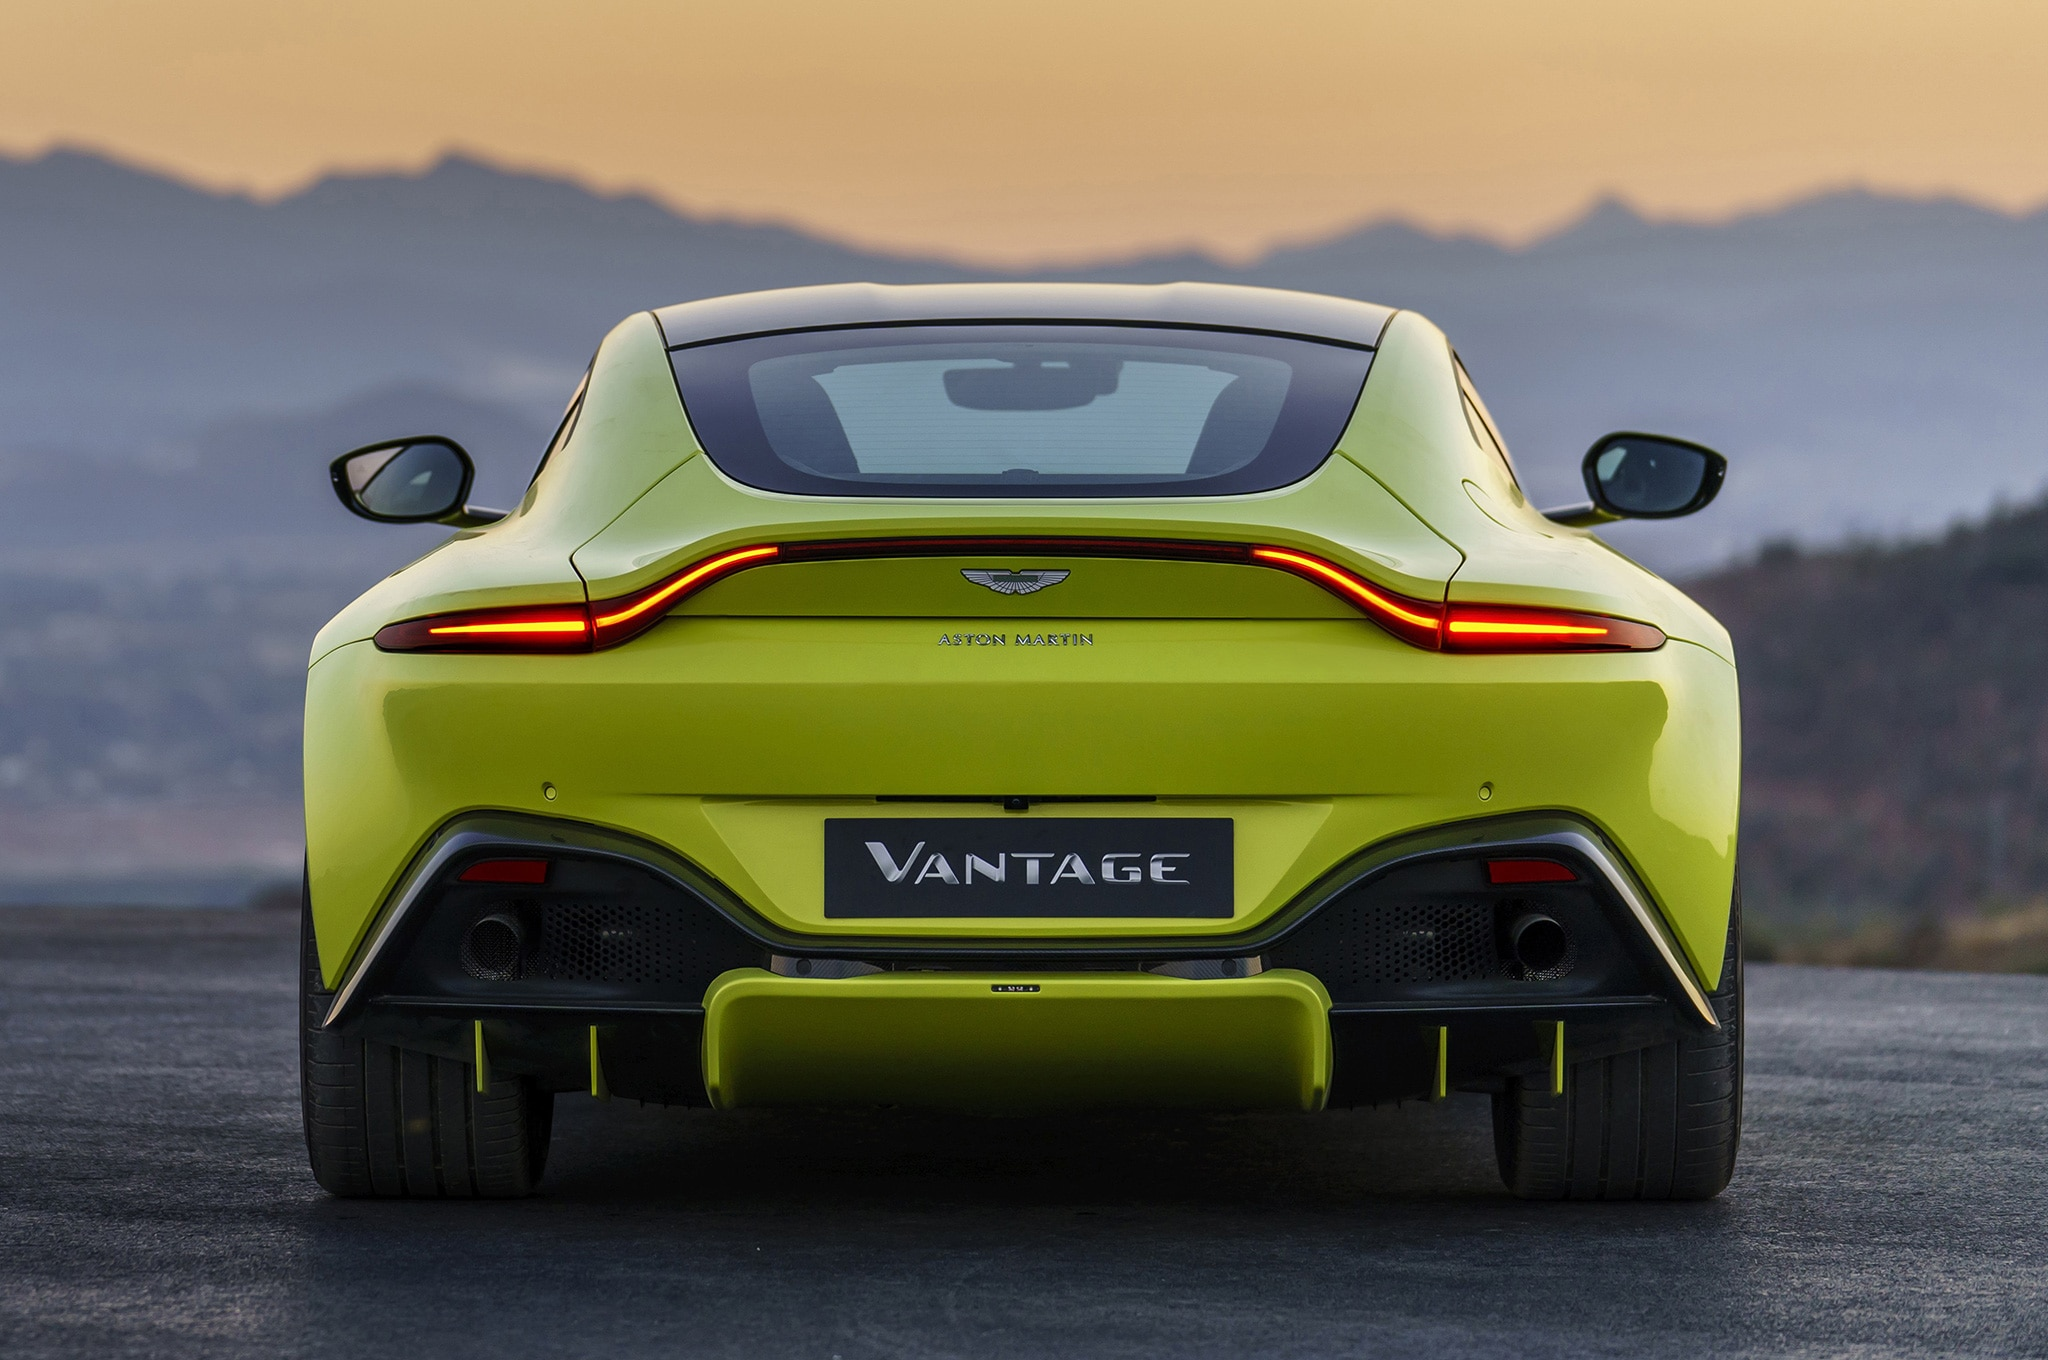 2019 Aston Martin Vantage Rear View Lights On